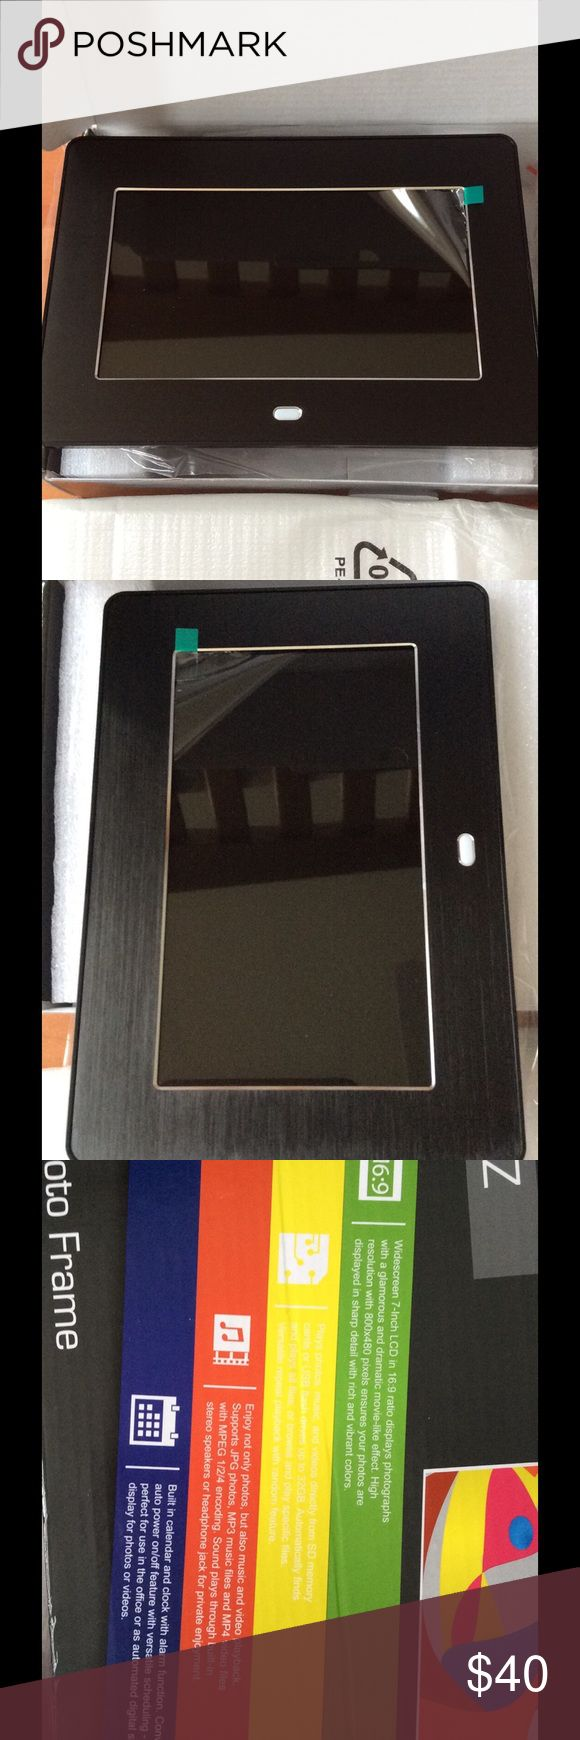 New! 7-inch Digital Photo Frame 🖼 Never used, sealed with the original box. Widescreen.  16:9 ratio display photography with a glamorous and dramatic movie. 800 x 489 pixels. Play photos, music and videos directly from SD memory cards or USB flash drive up to 32 GB. Support JPG photos, MP3 music files and MP4 video files with MPEG 1/2/4 encoding. Built in calendar and clock with alarm function. Other